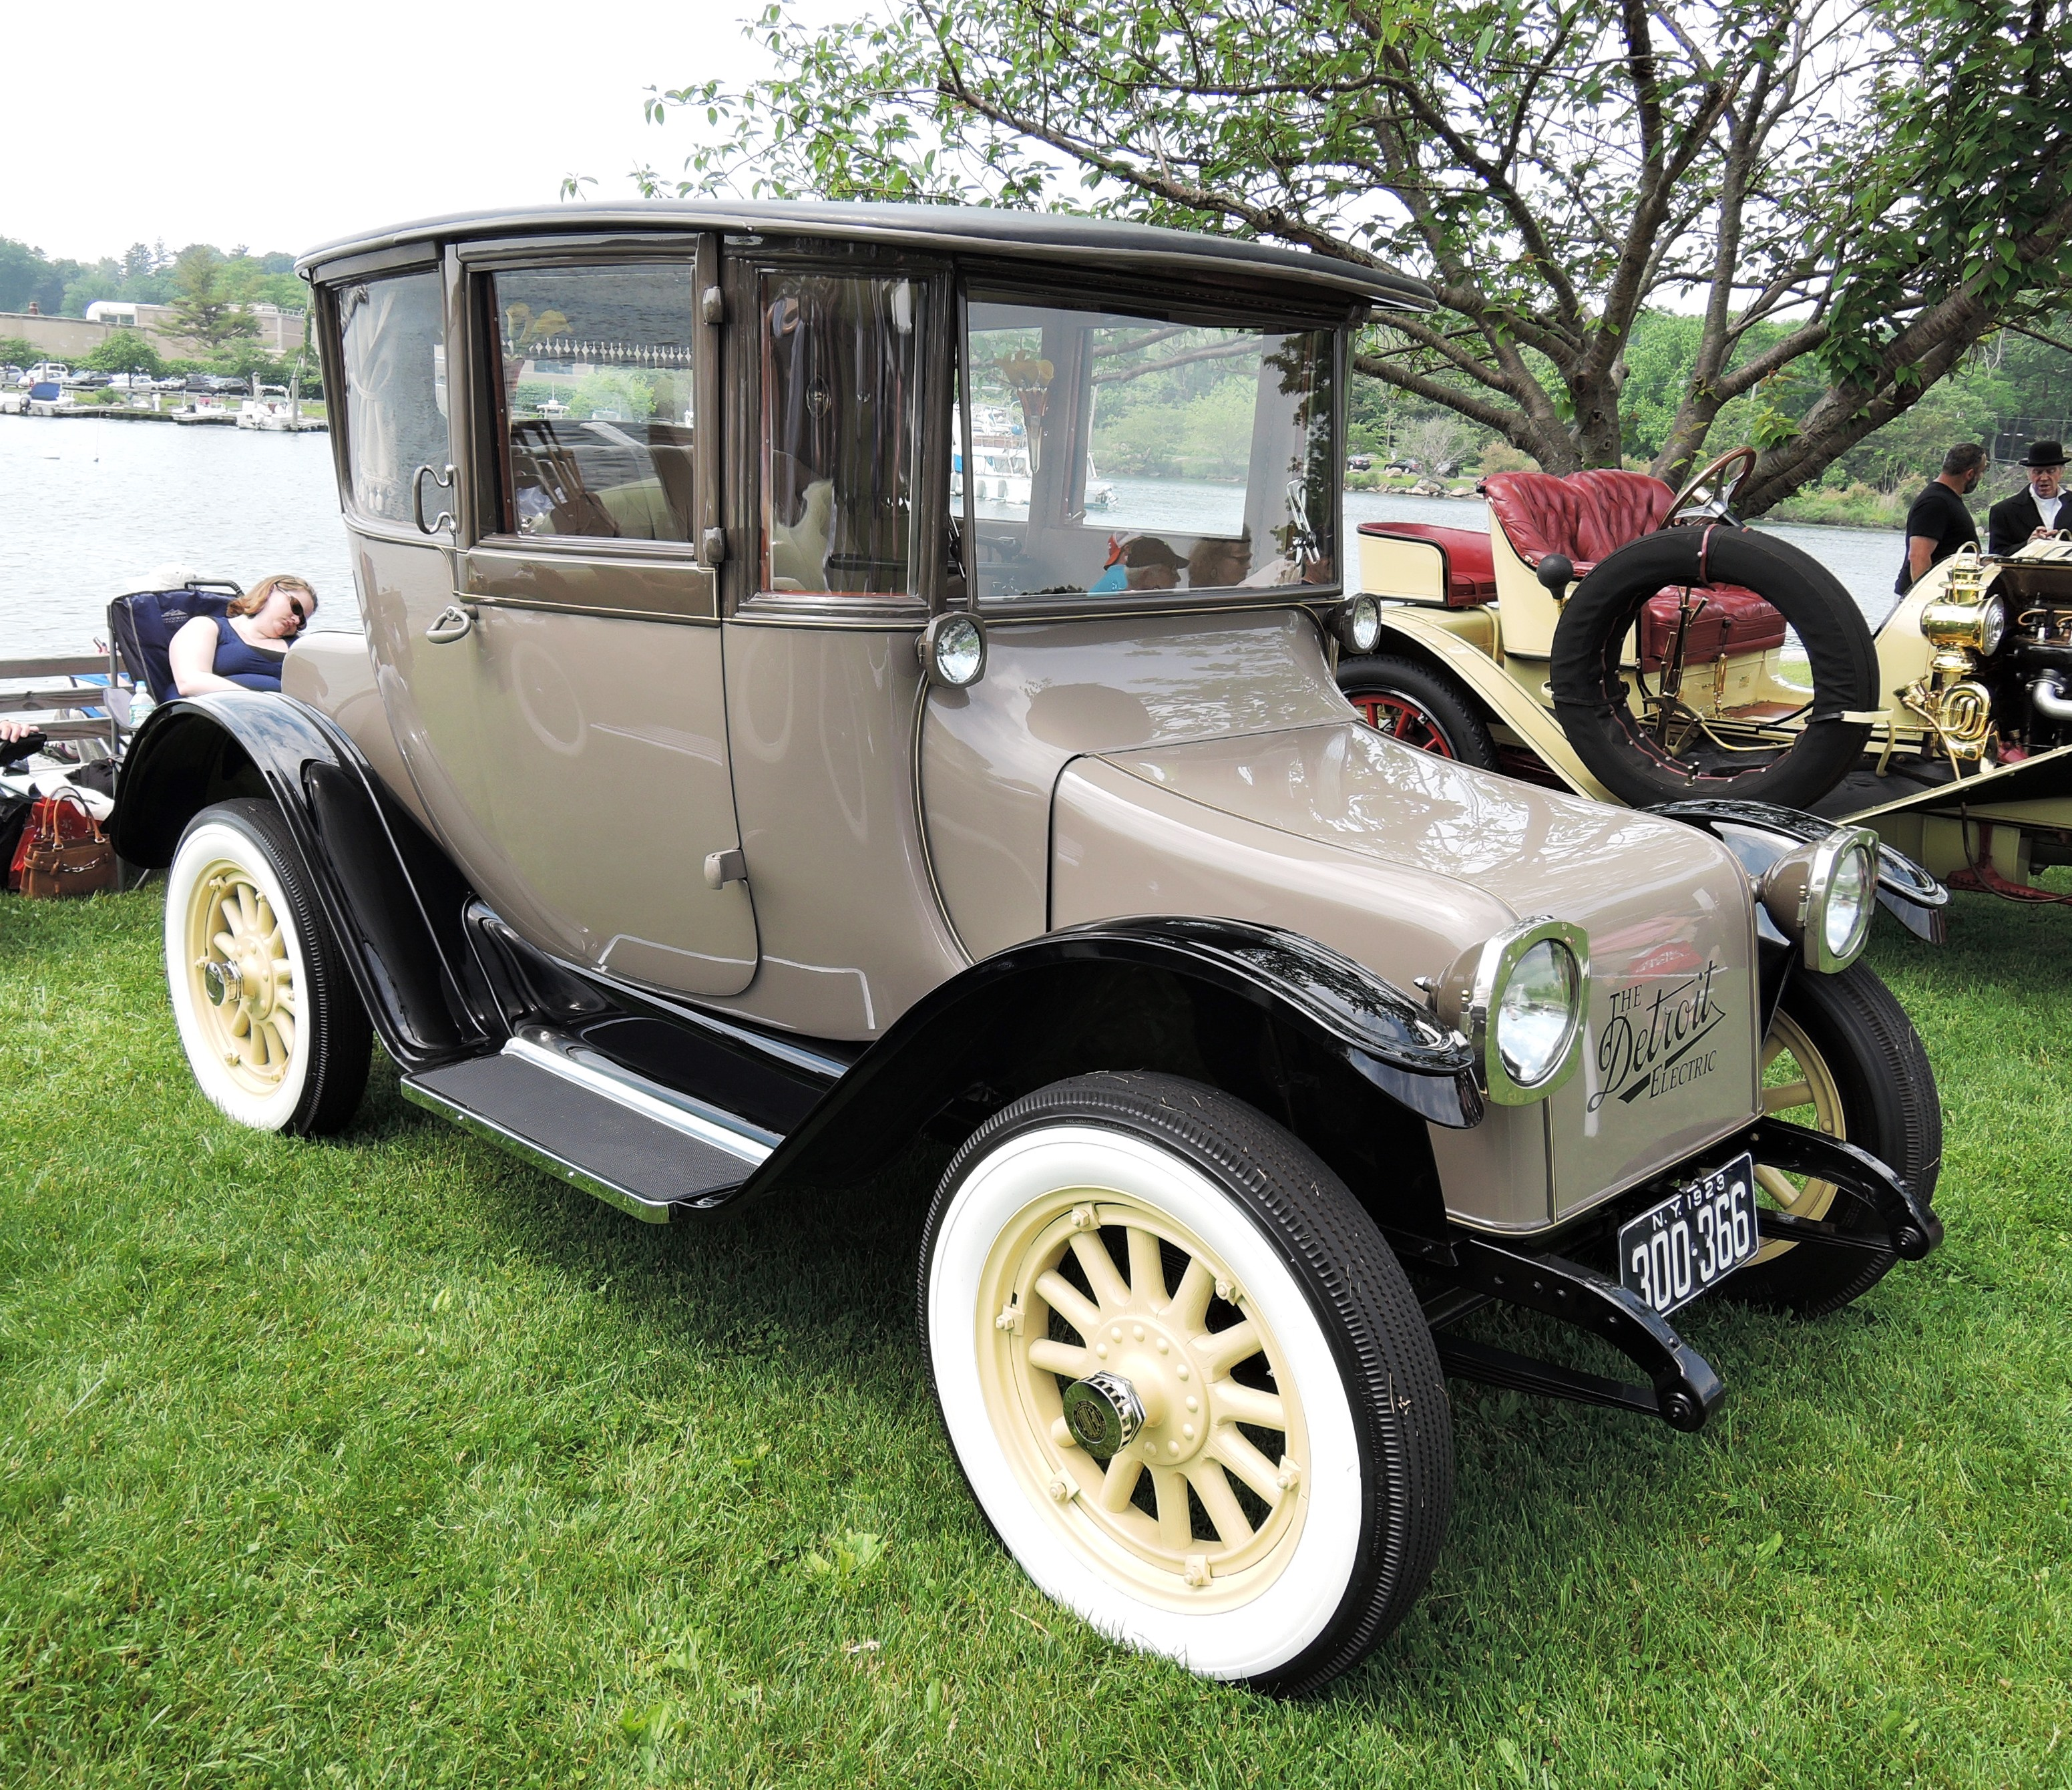 beige 1923 Detroit Electric 97B - greenwich concours